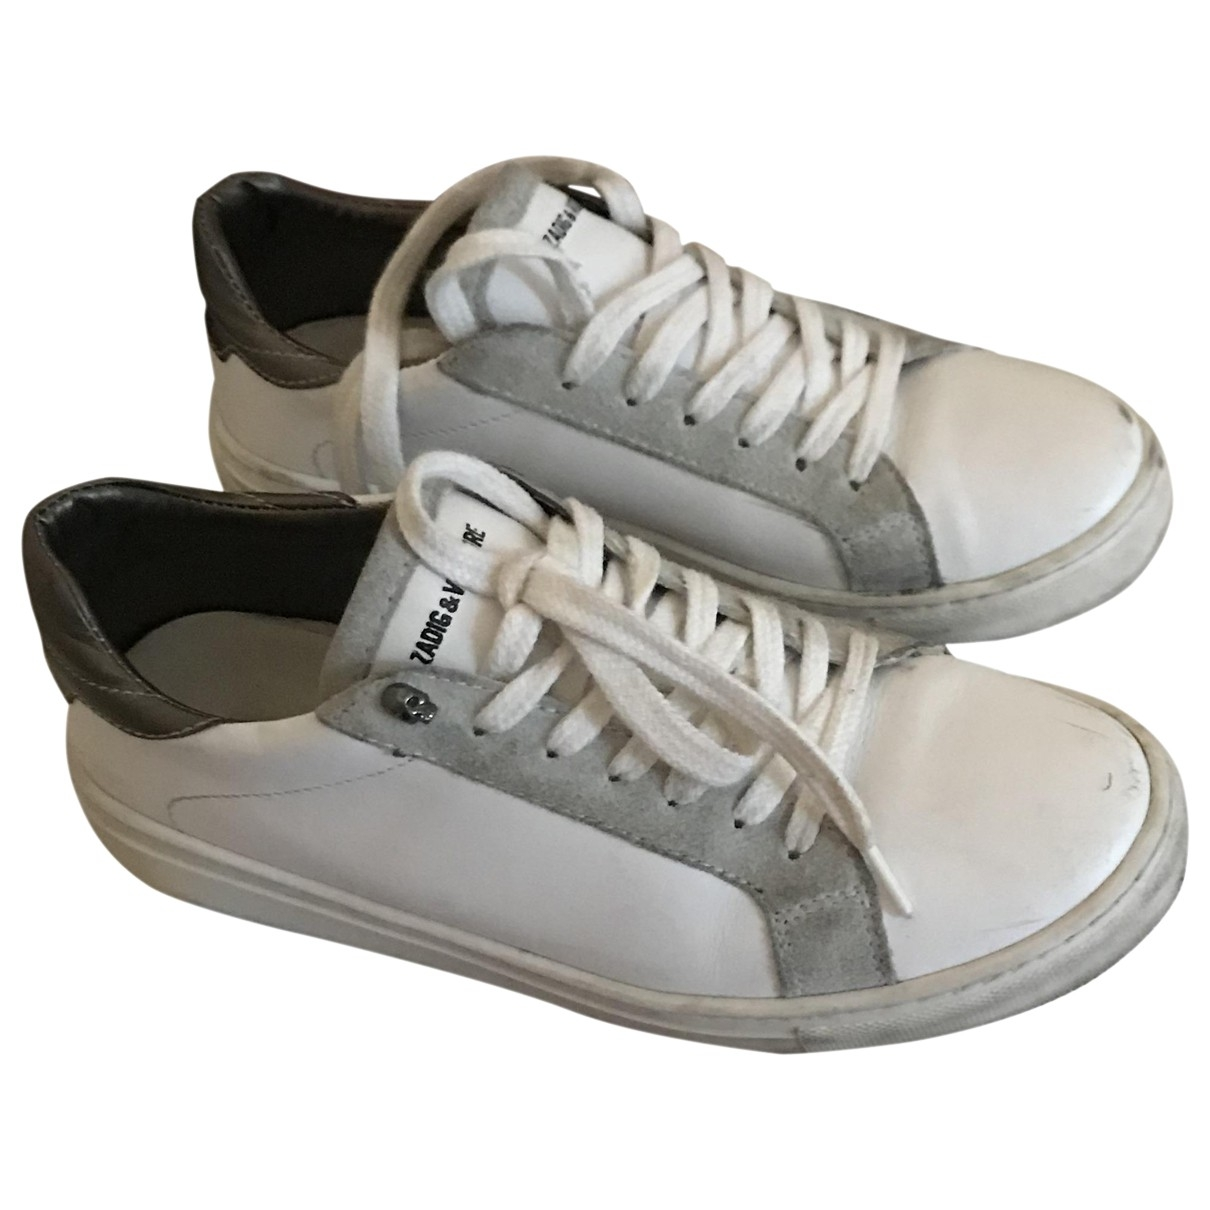 Zadig & Voltaire \N White Leather Trainers for Women 36 EU